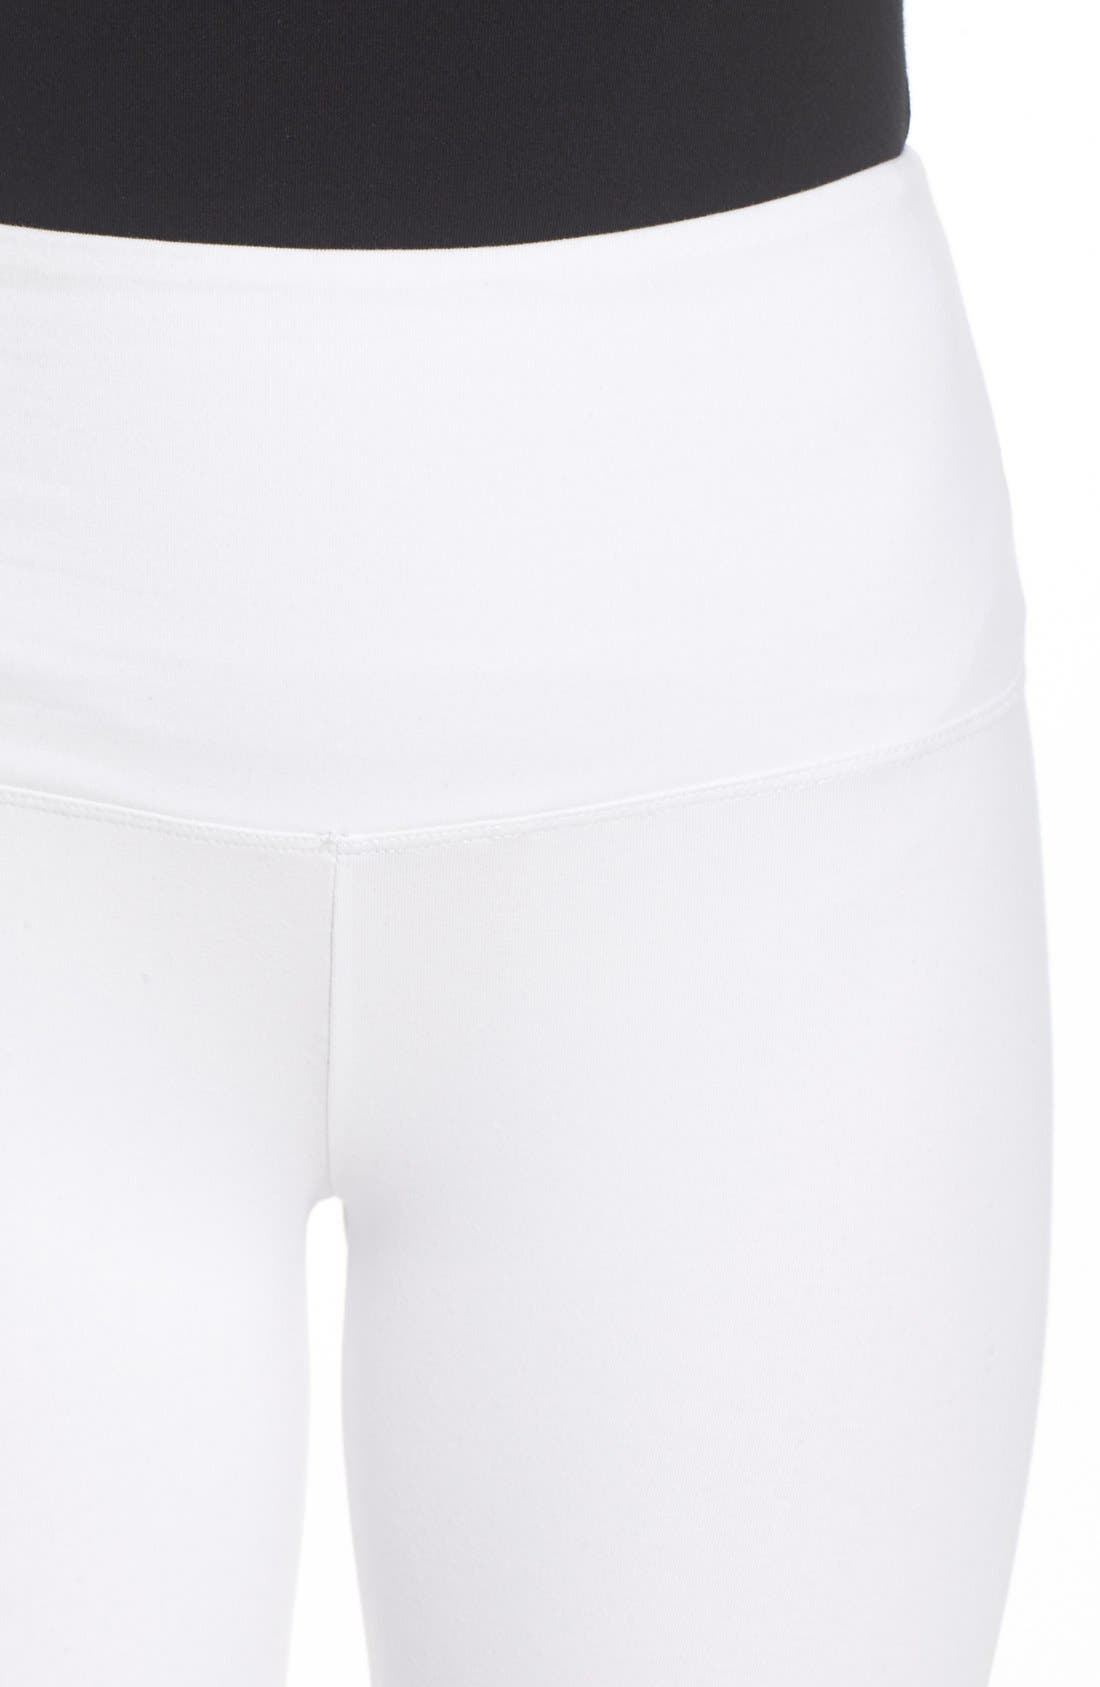 Control Top High Waist Capris,                             Alternate thumbnail 4, color,                             WHITE